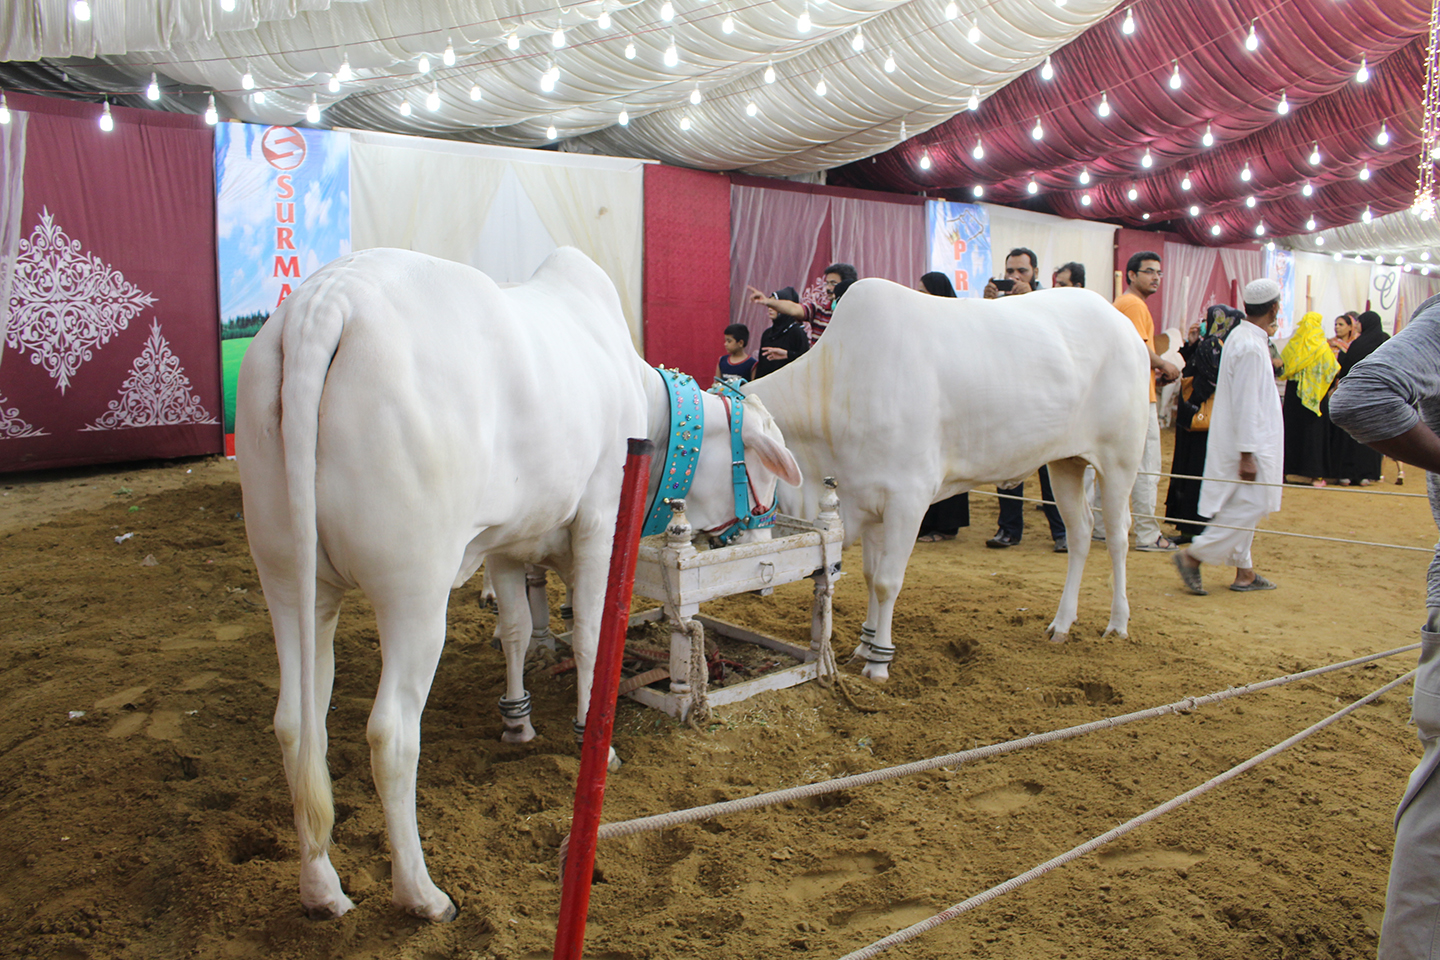 Couple Of White Cows In Tent